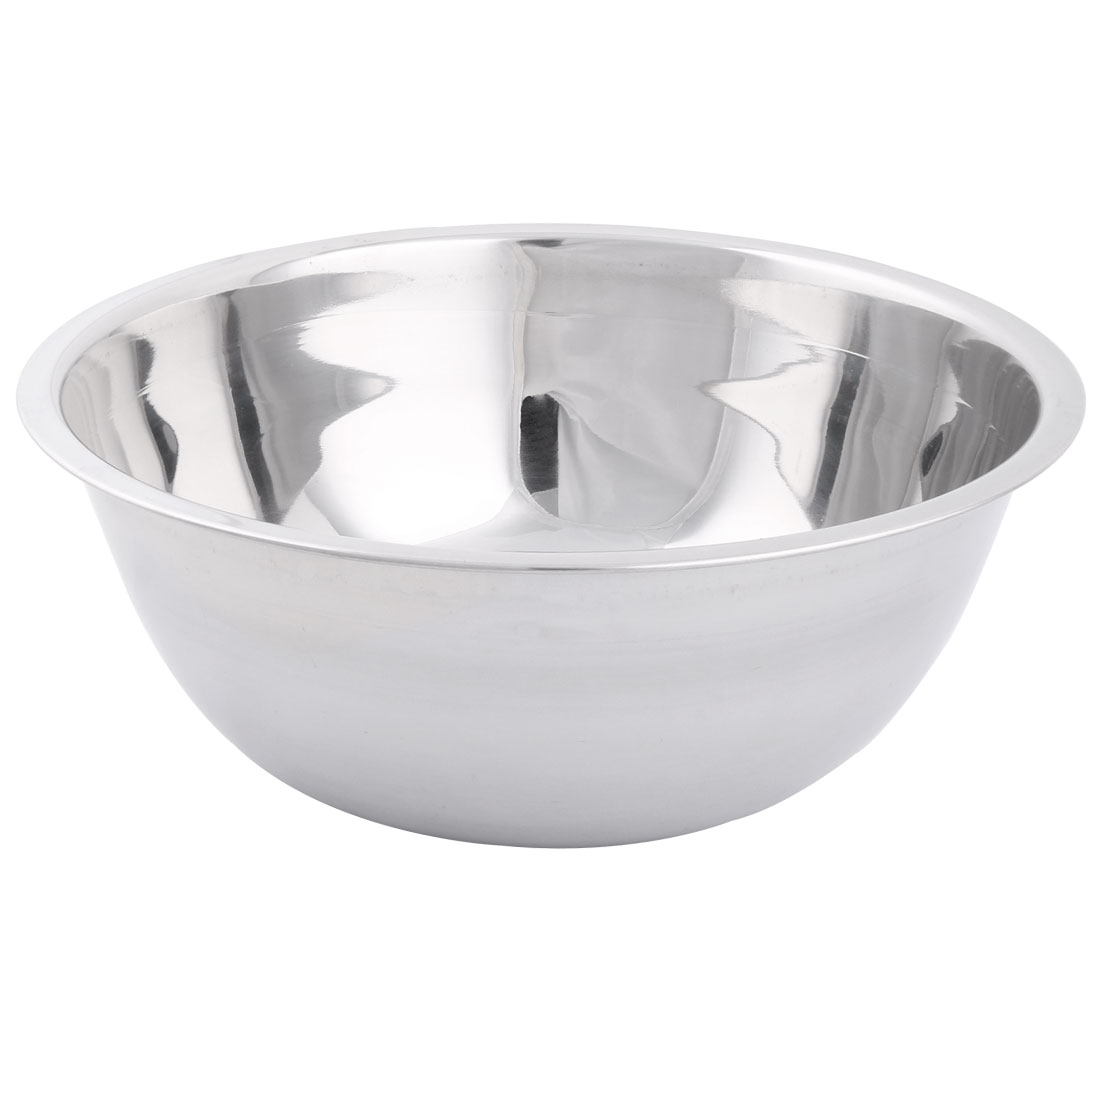 Kitchen Stainless Steel Food Vegetable Salad Noodle Mixing Bowl Container 32cm Diameter